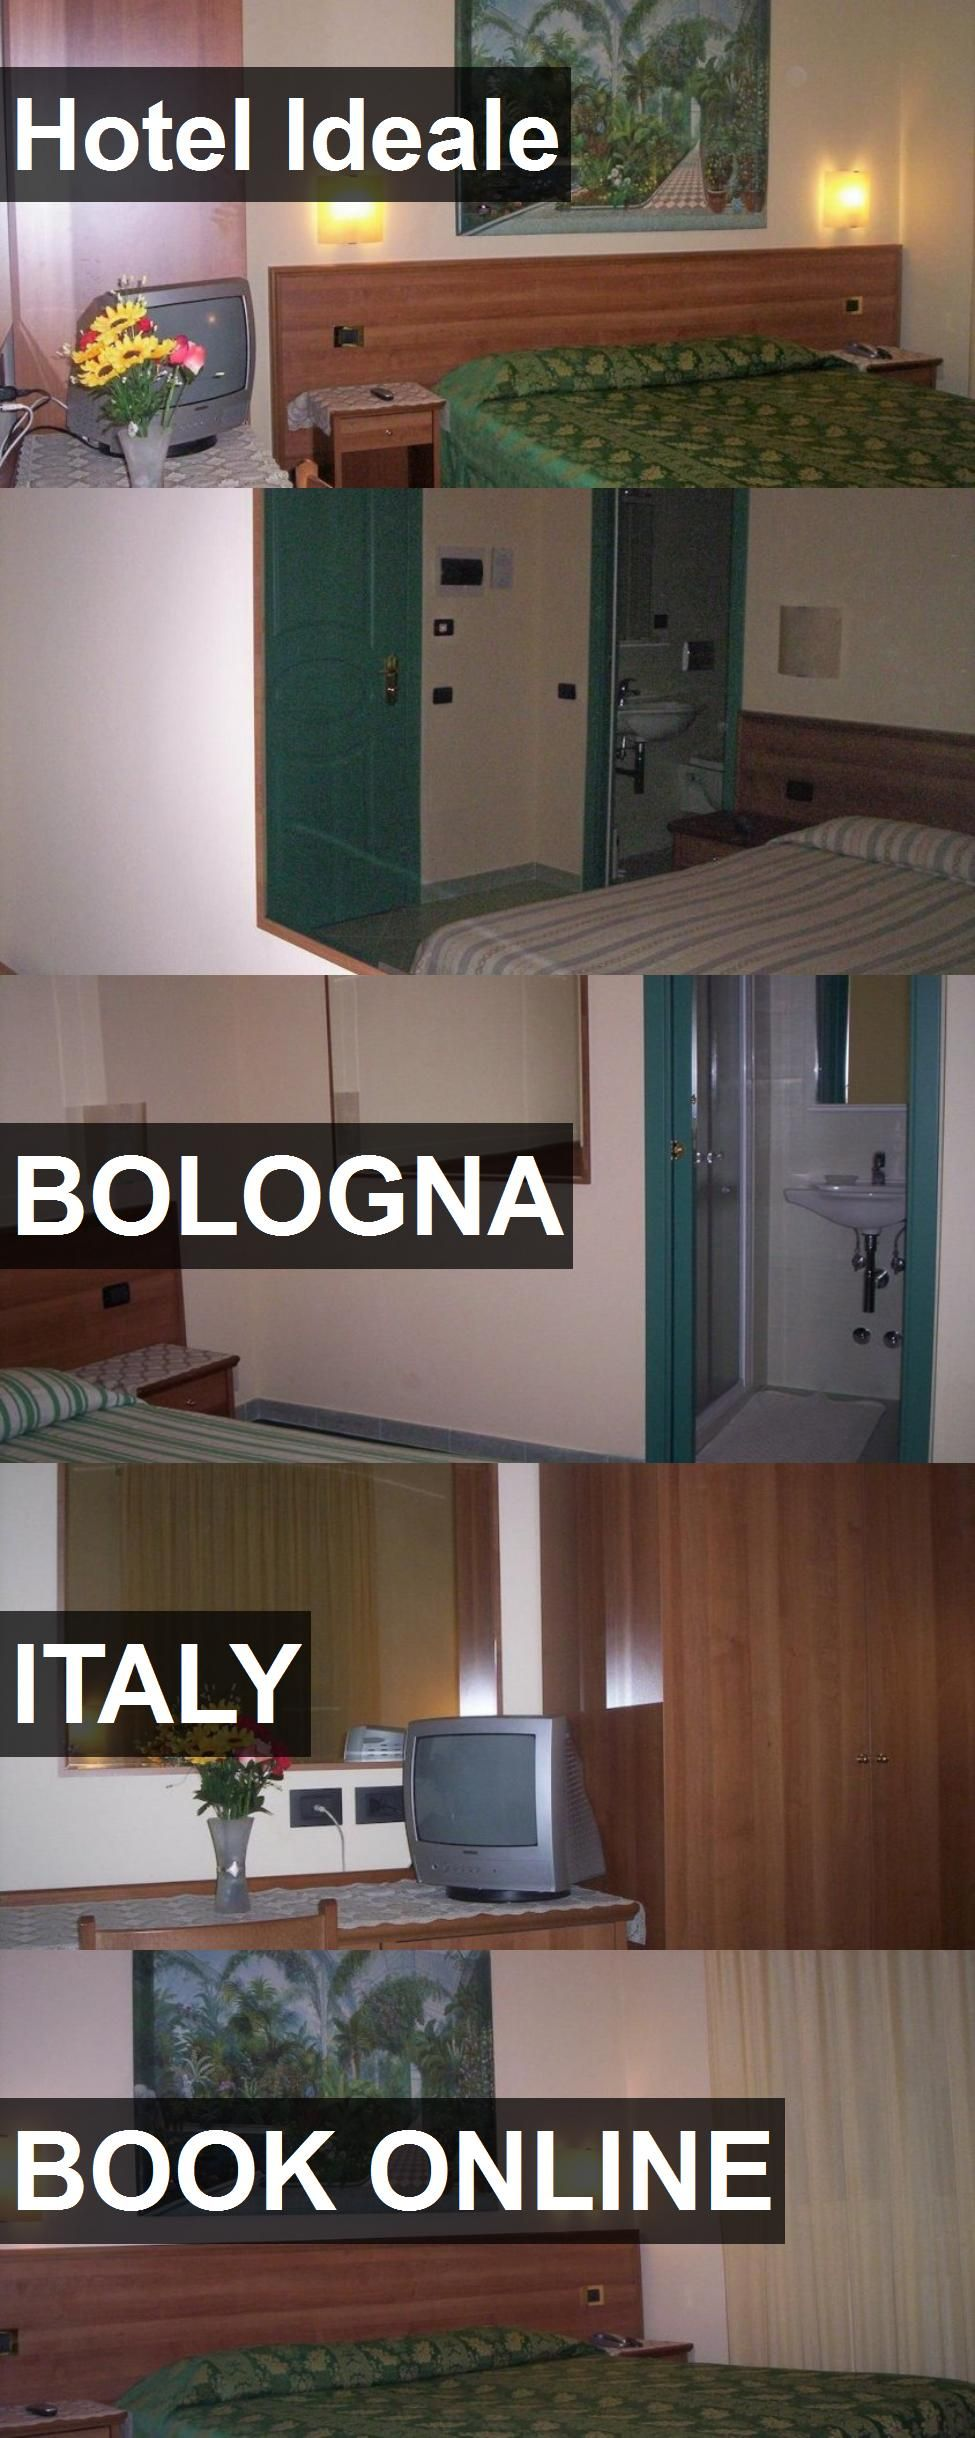 Hotel Ideale In Bologna, Italy. For More Information